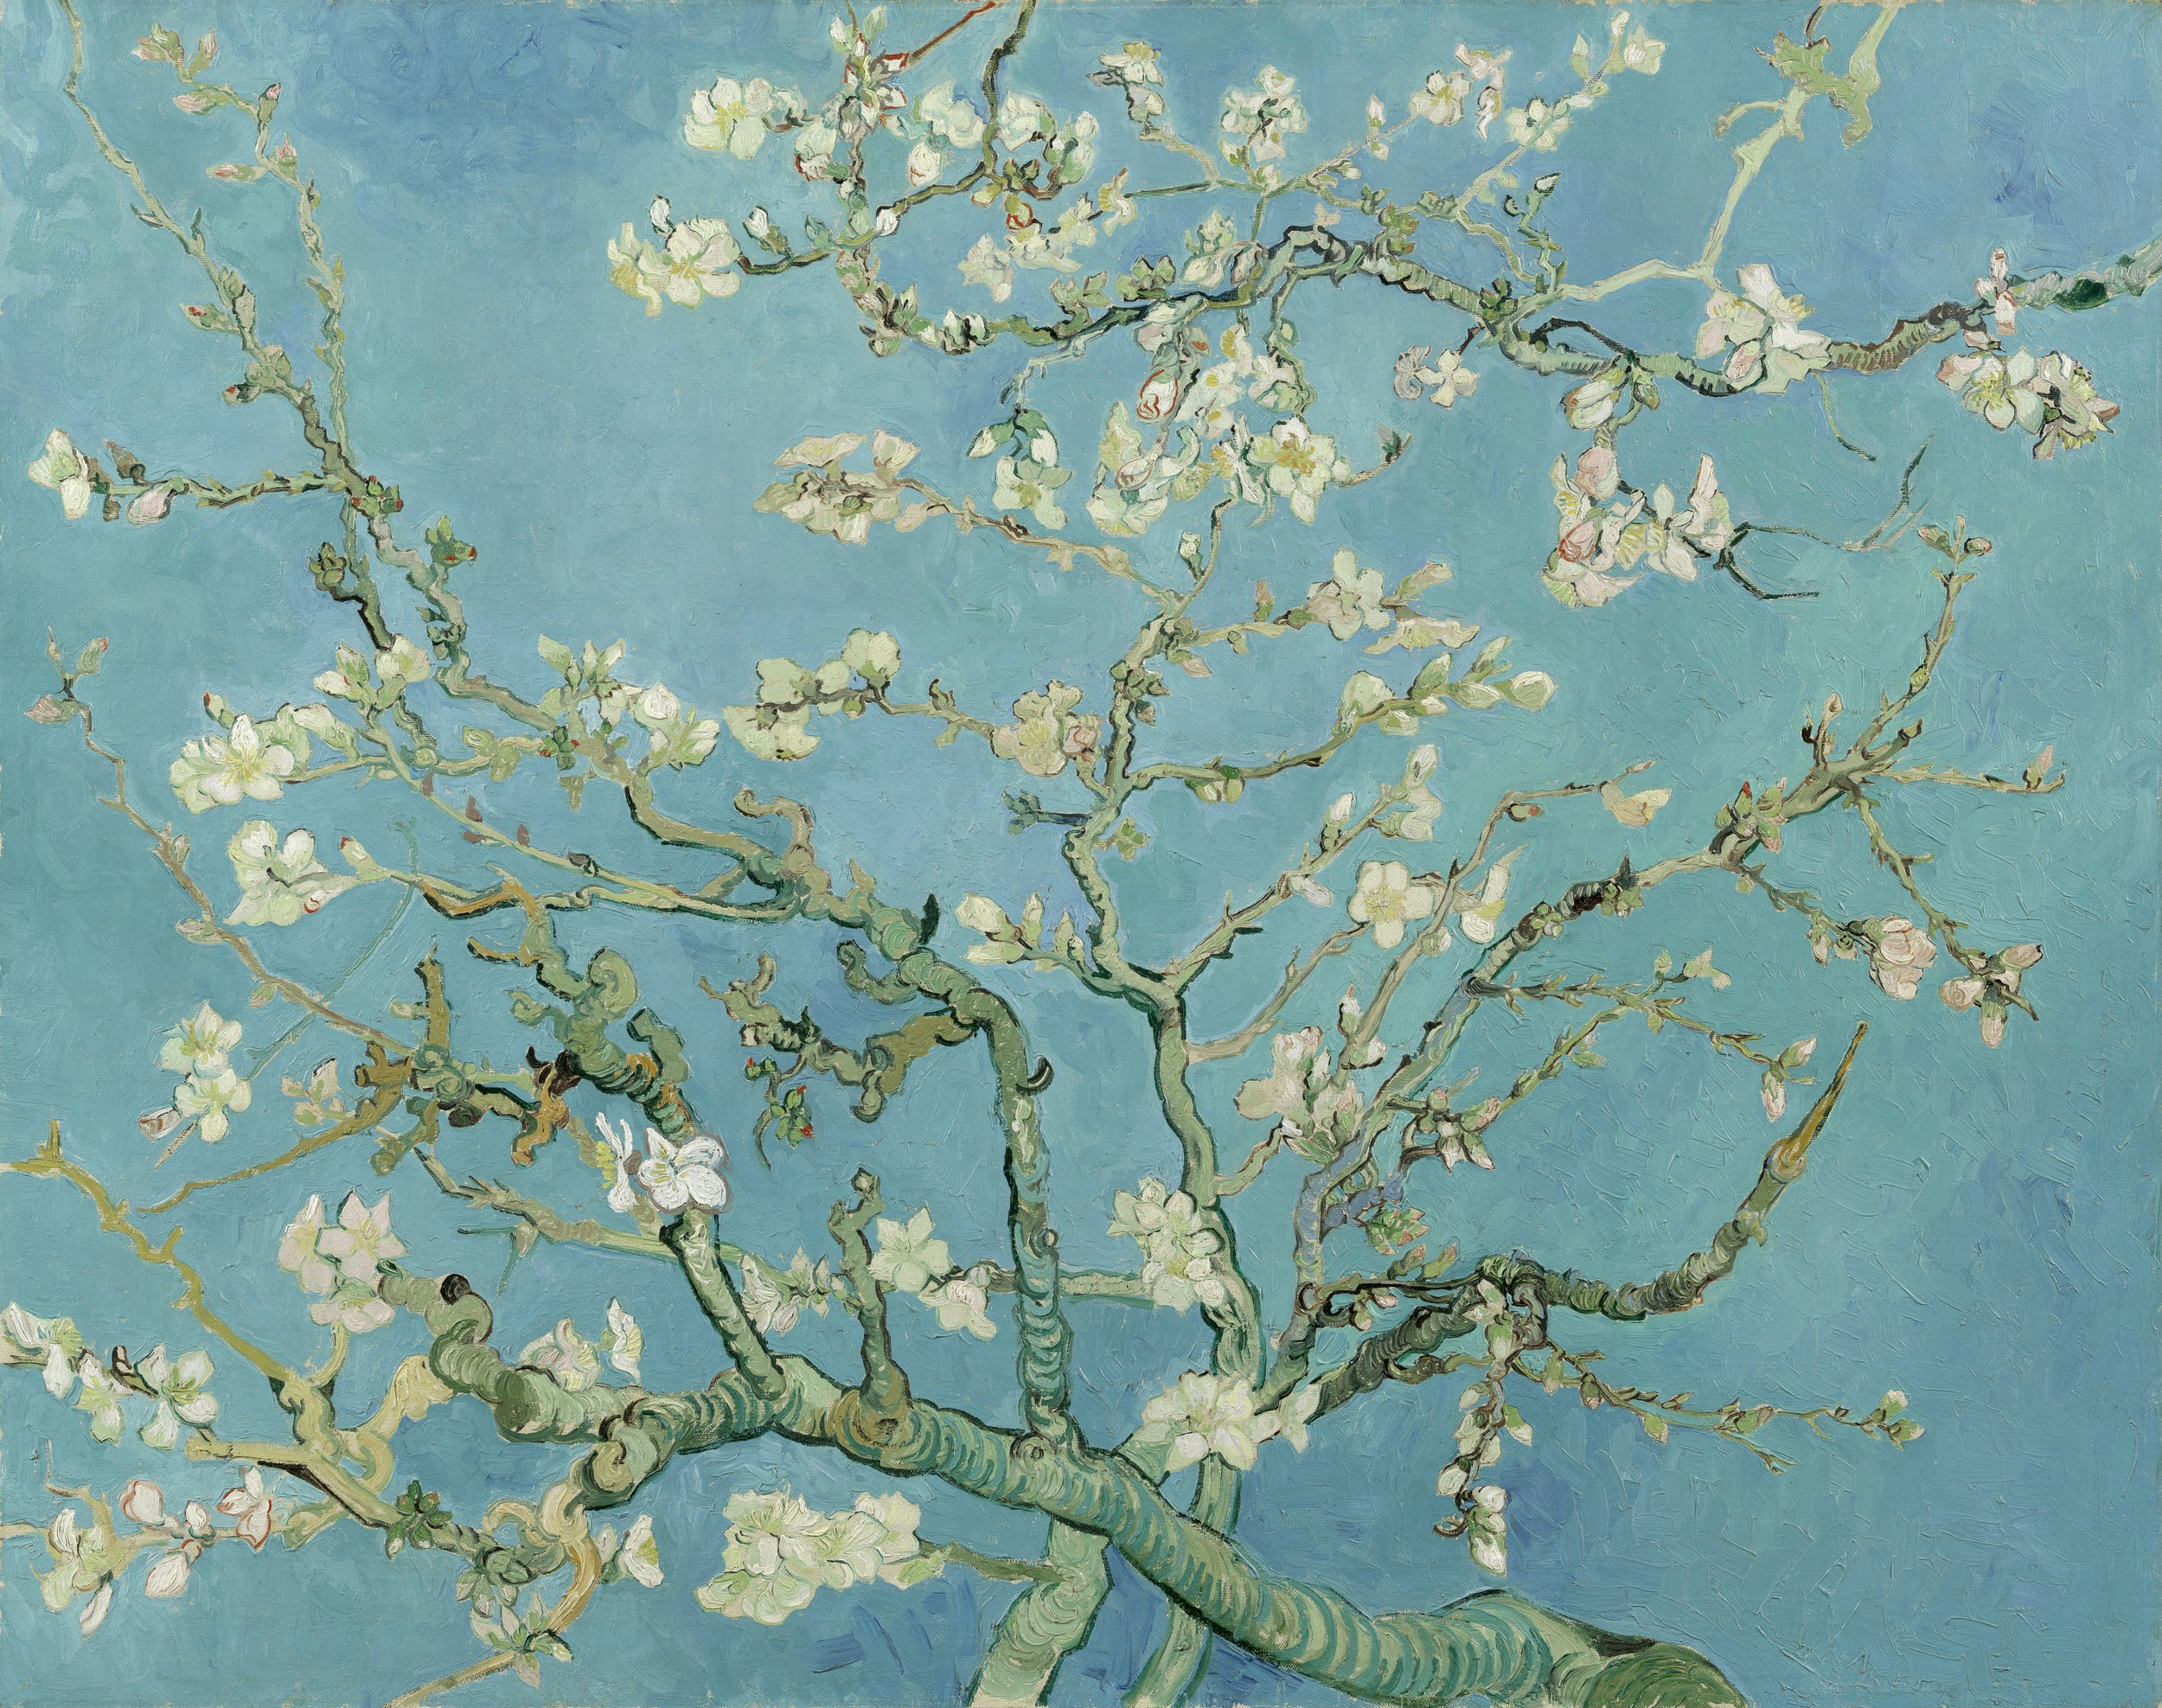 Vincent Van Gogh | Almond Blossom | 1890 | sourced via Wikimedia Commons